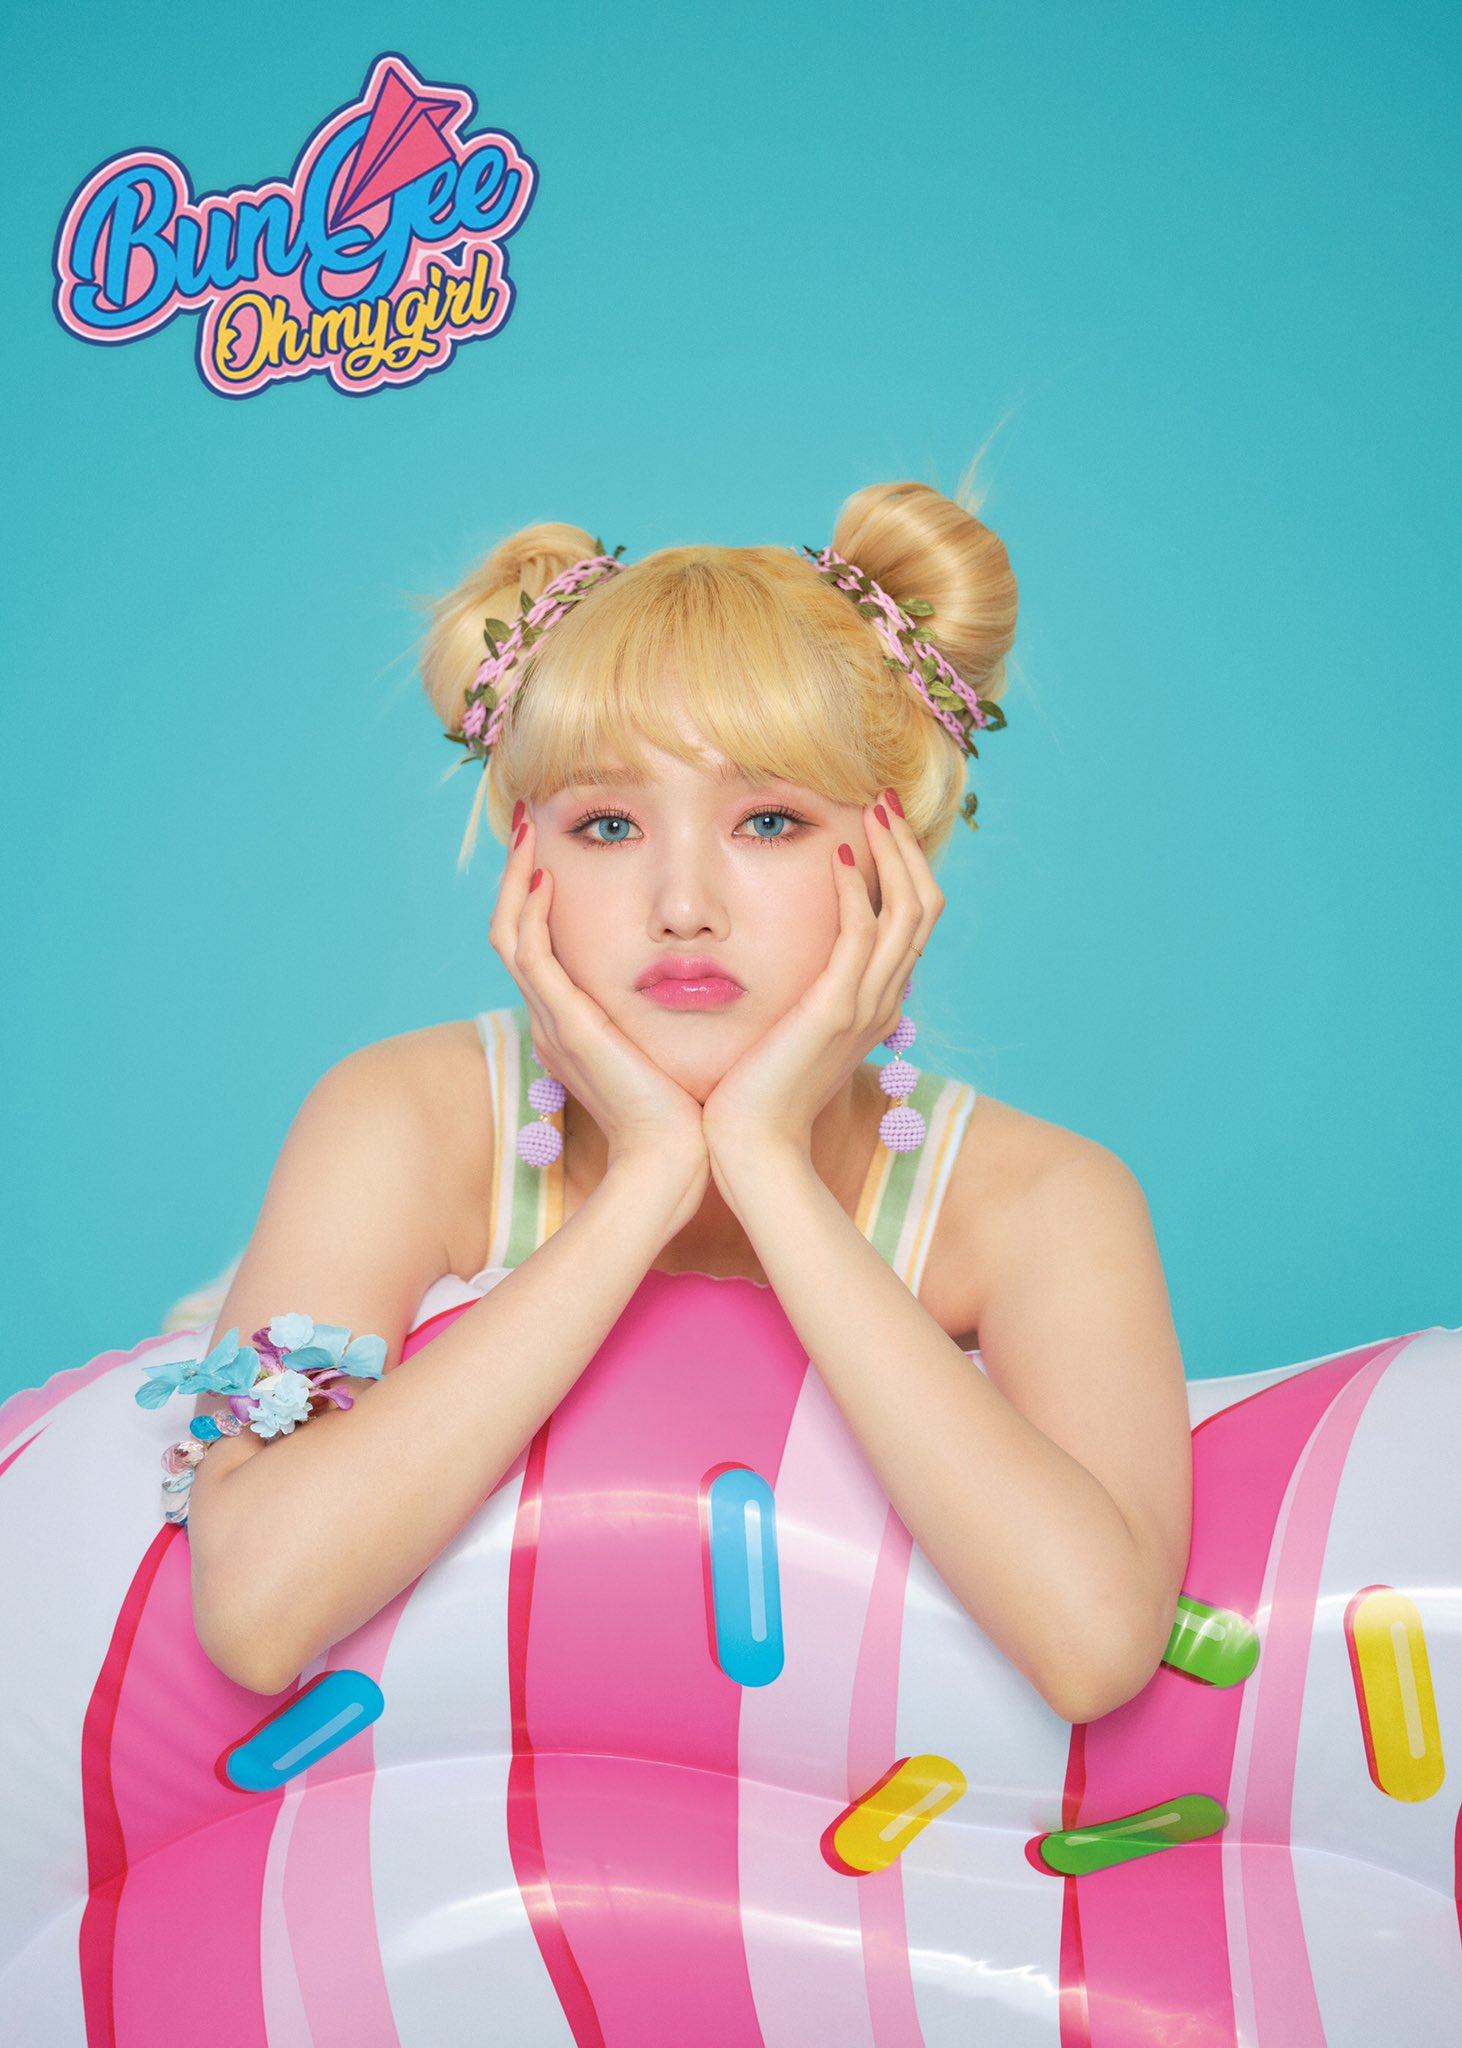 Official] Found You Oh My Girl Idol Thread - KPopSource